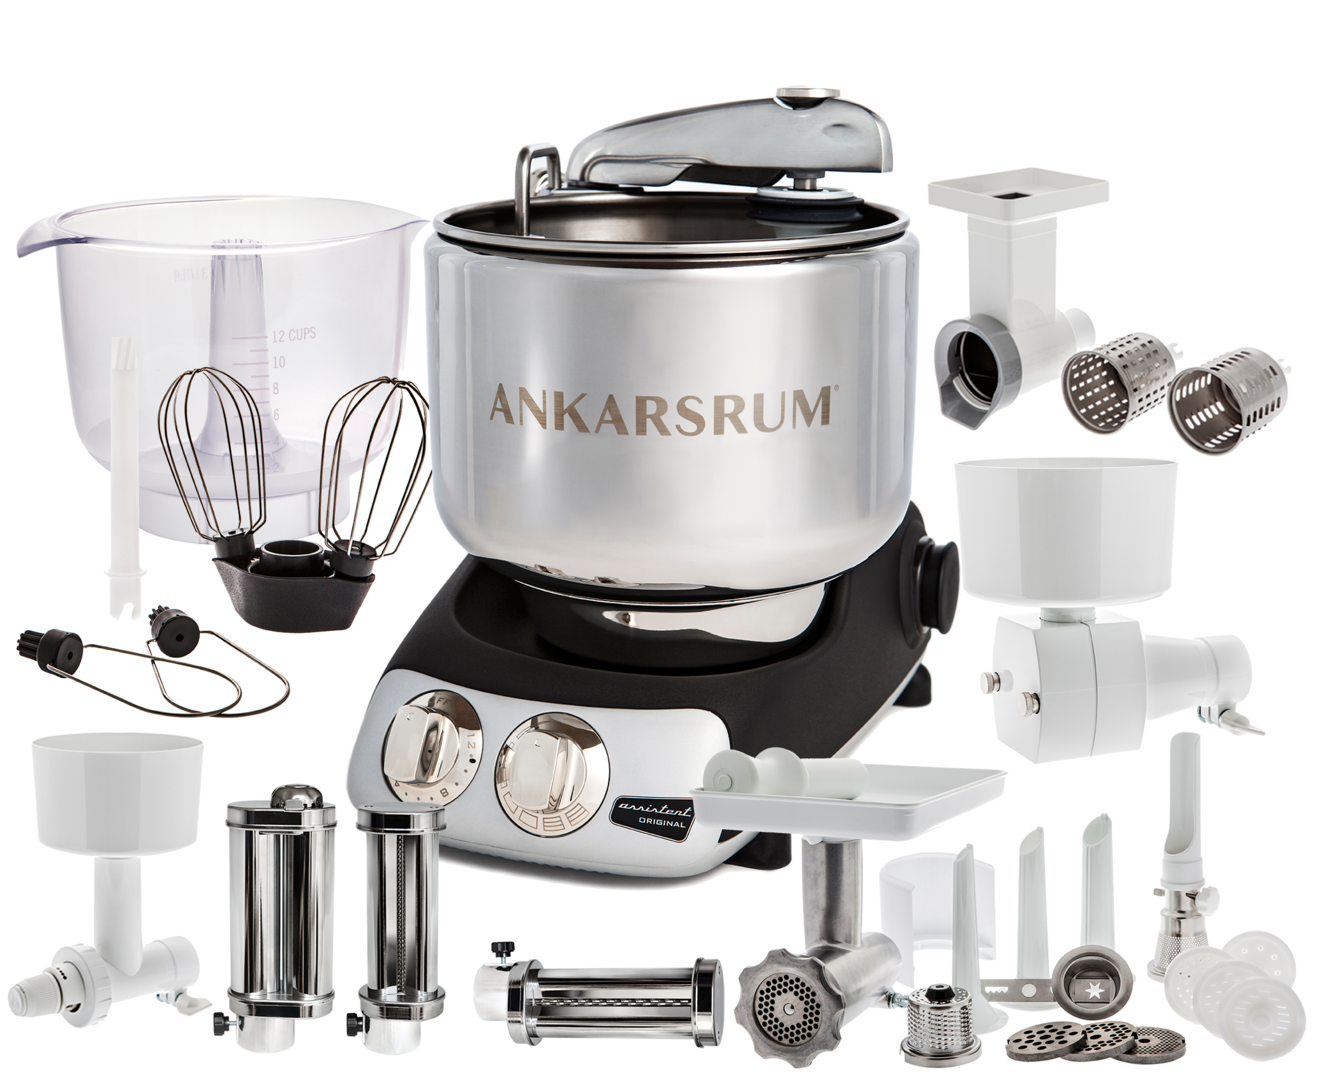 Ankarsrum Original AKM6220B Total mixer, matte black (2300100)